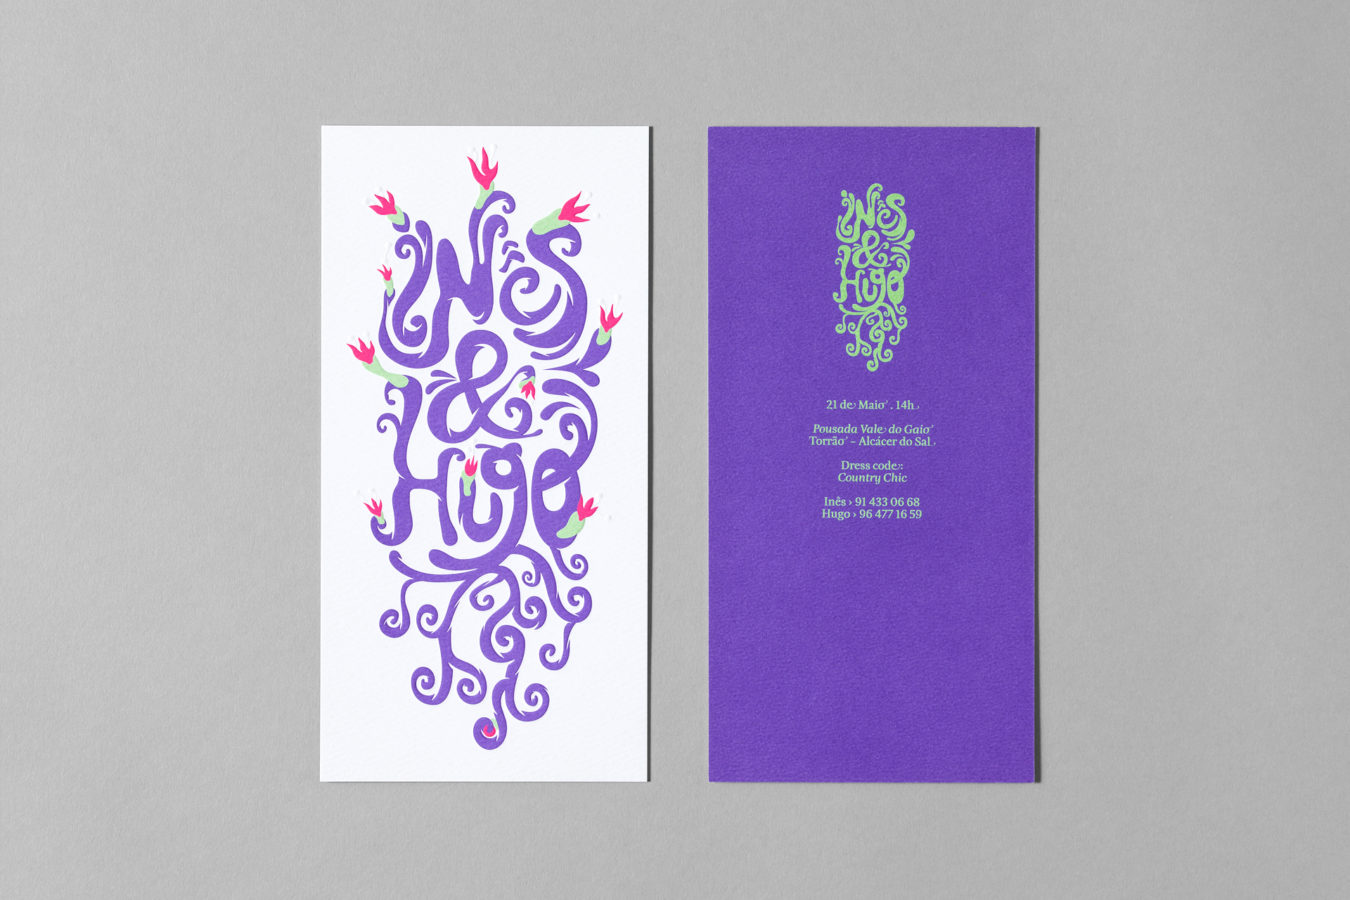 Wedding Invitation<br>Inês &amp; Hugo